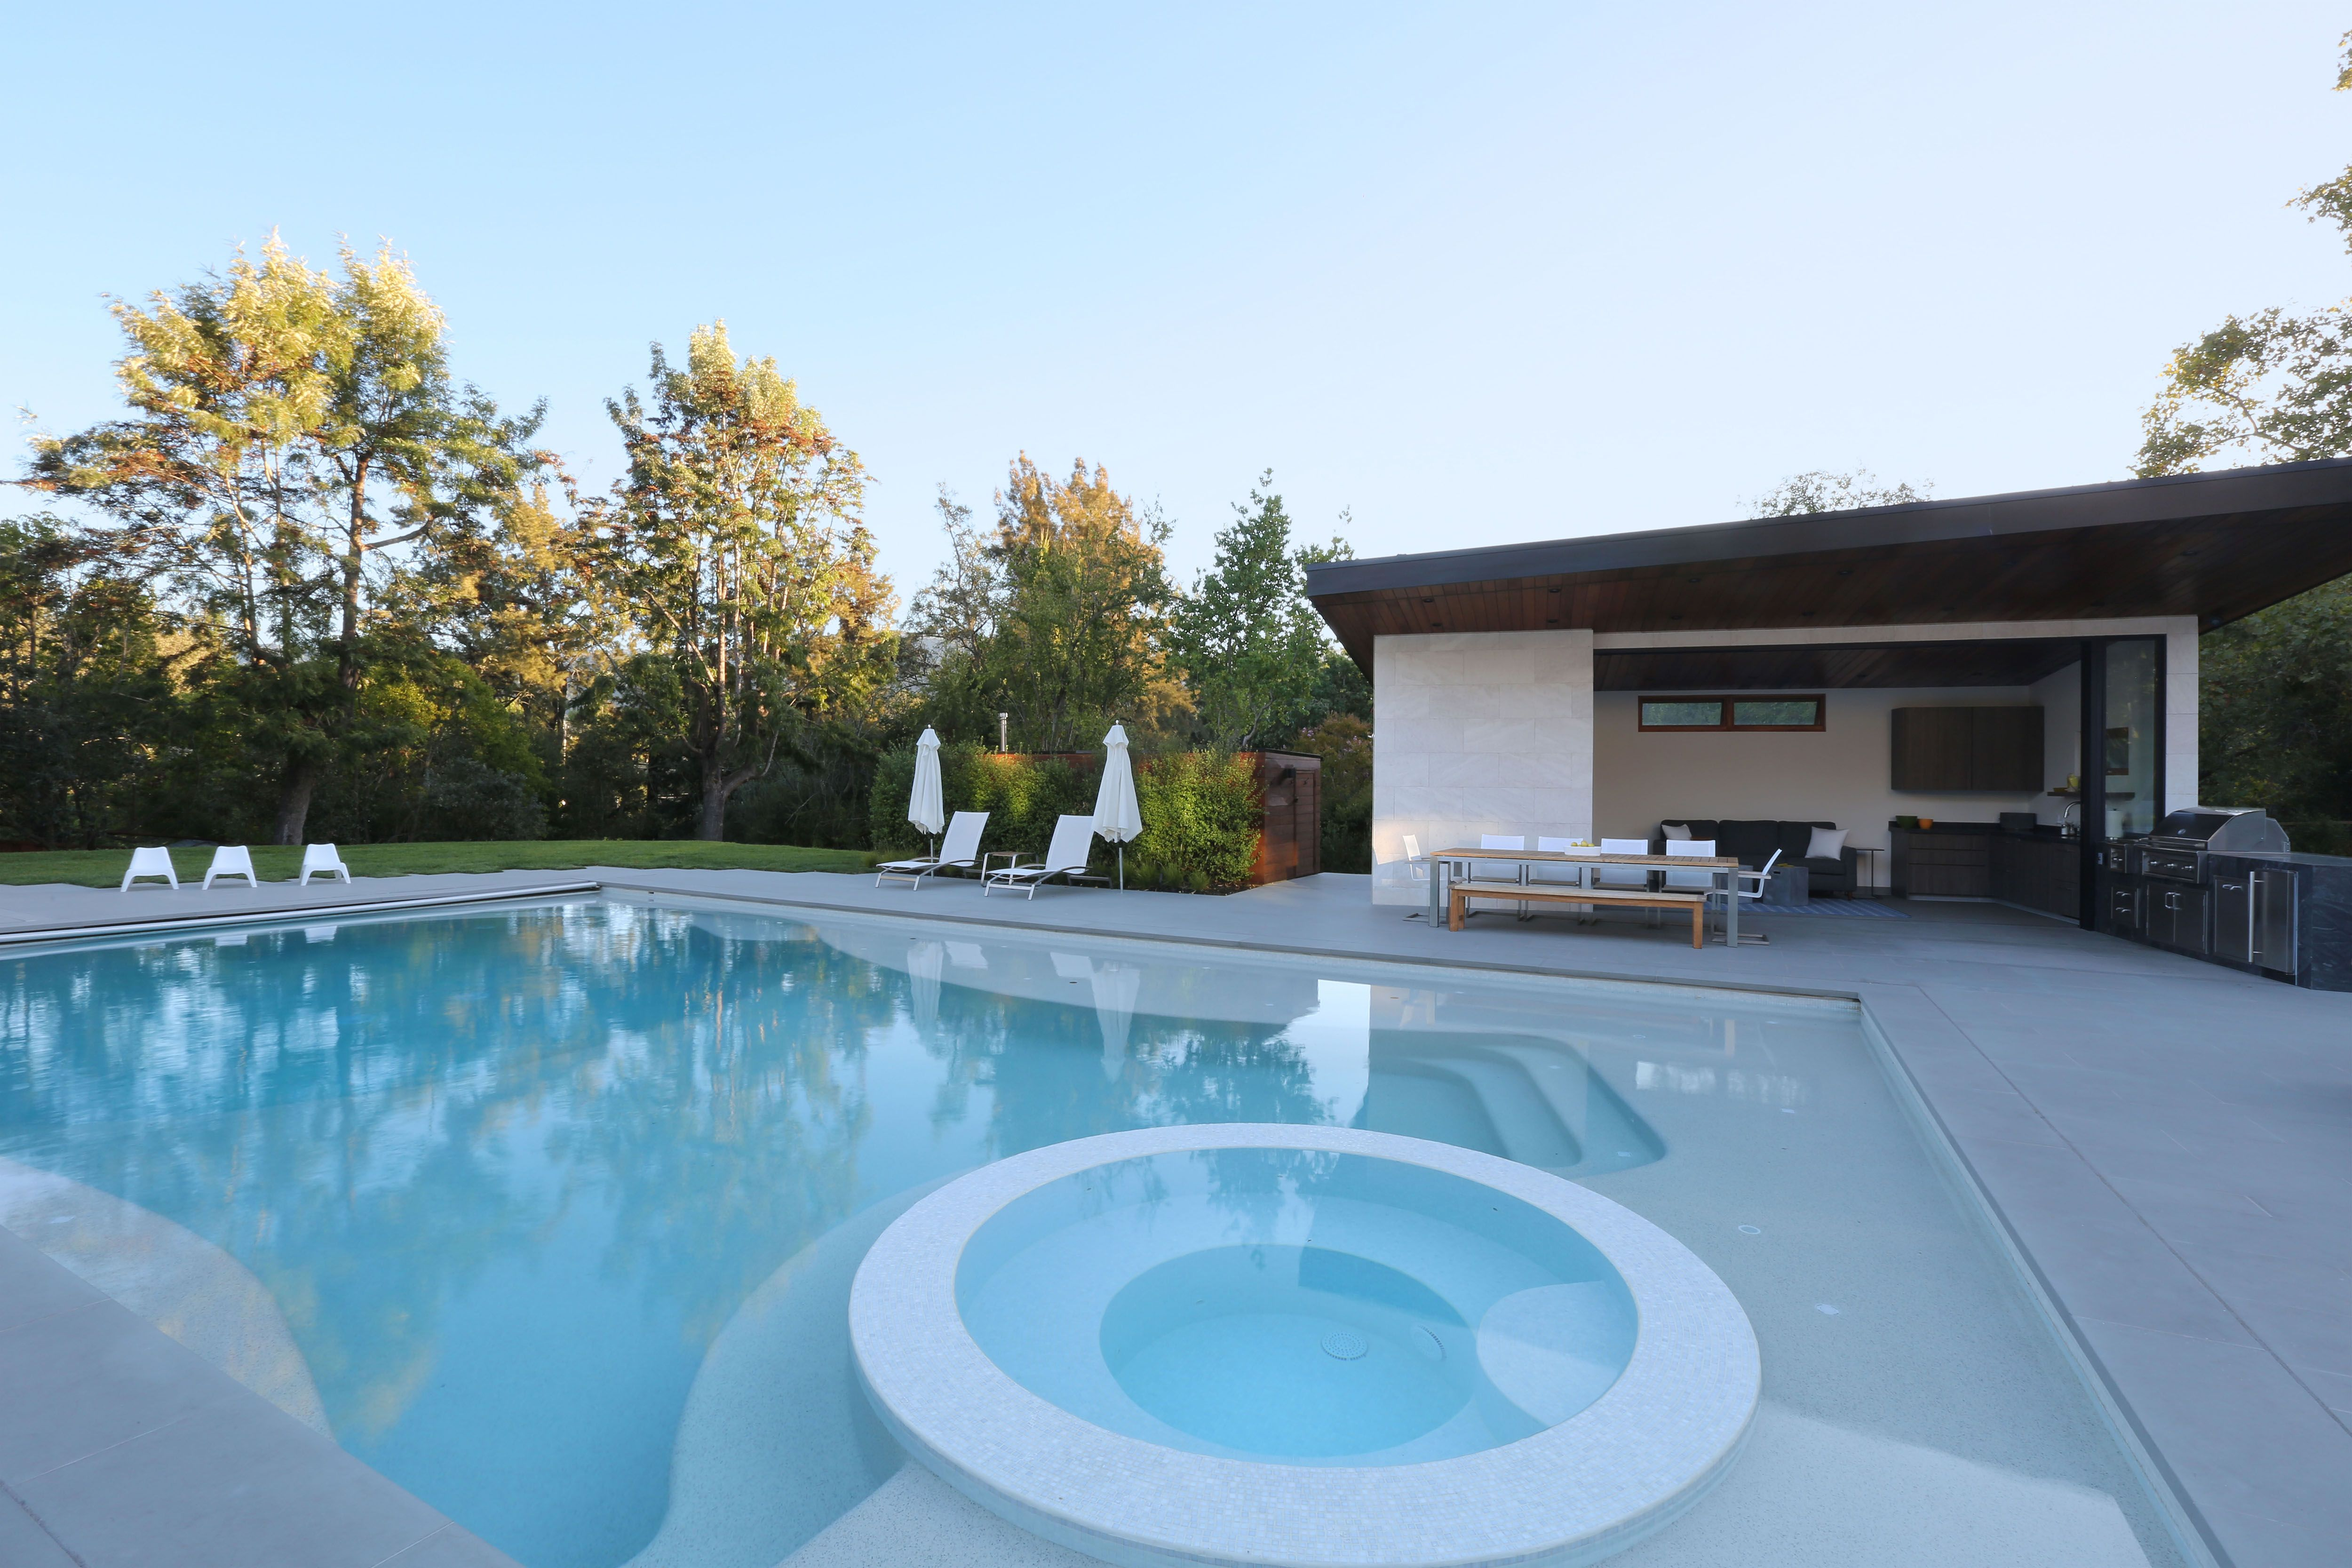 25 Stunning Pool Designs Best Ideas For Inground Swimming Pools